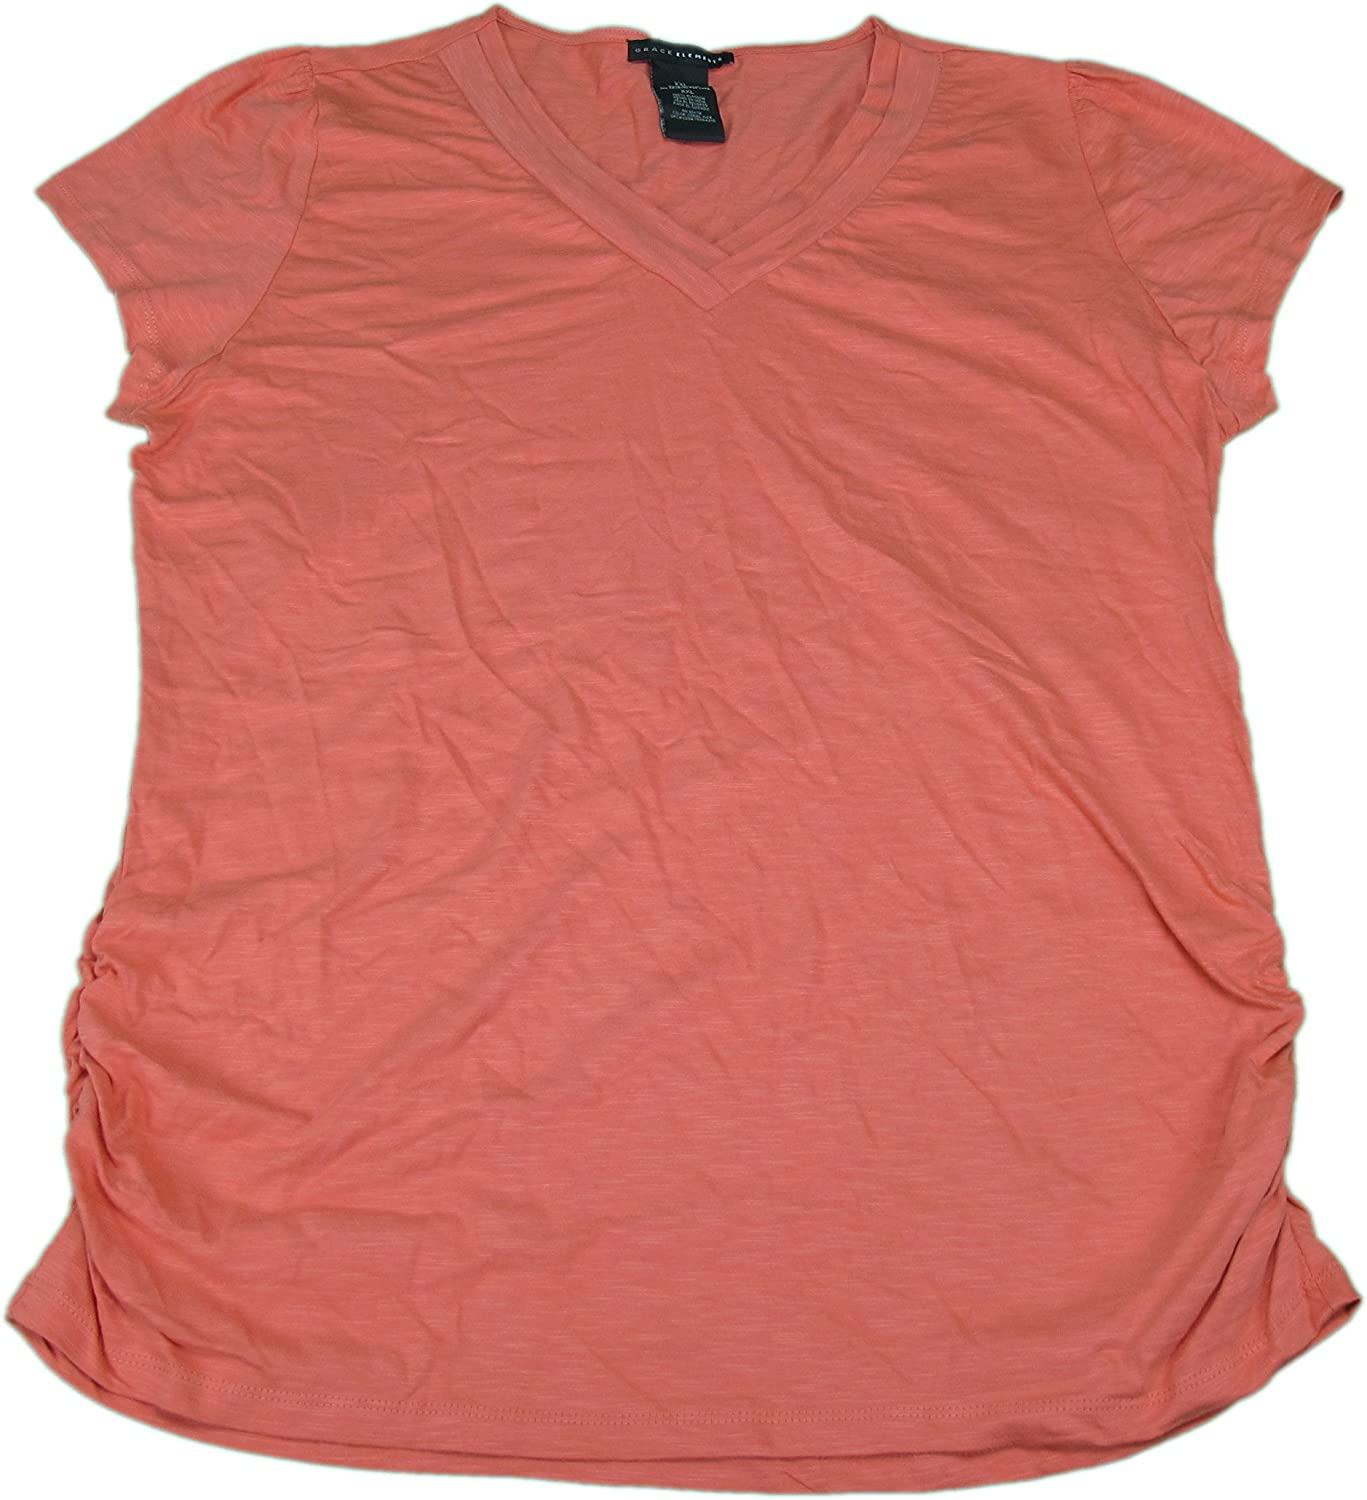 Grace Elements Womens Ruched S S V Neck Top Shirt